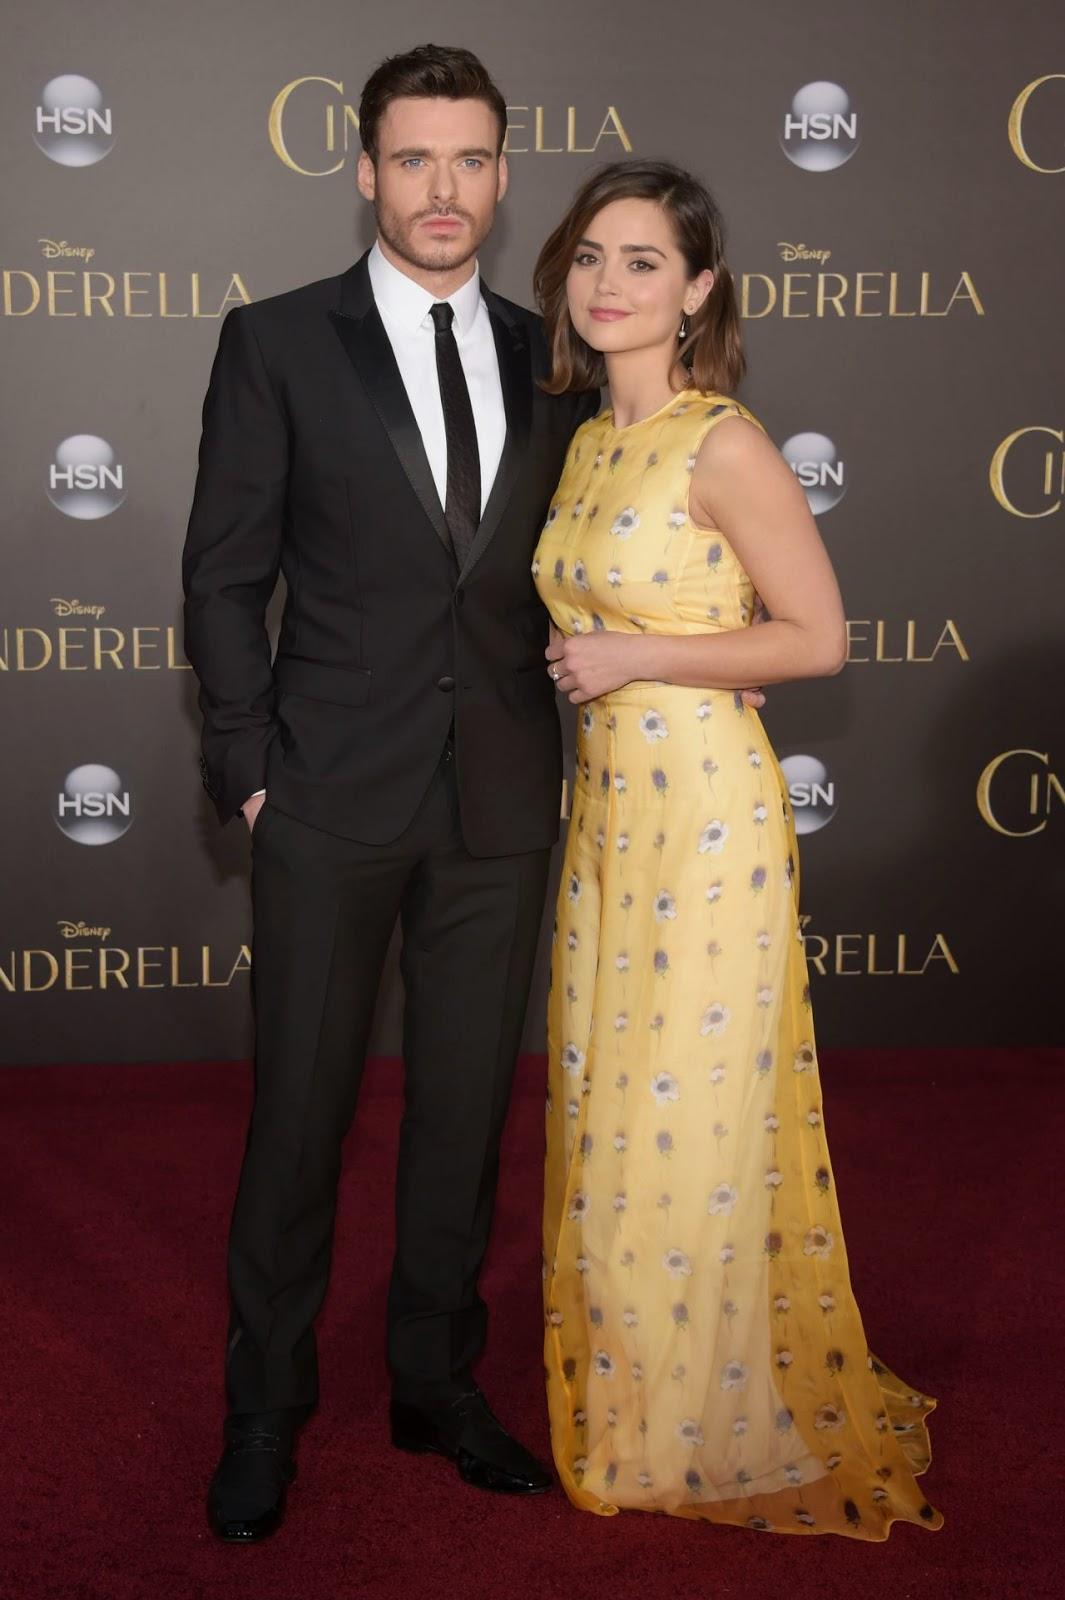 Jenna Louise Coleman and Richard Madden at the 'Cinderella' premiere in Hollywood